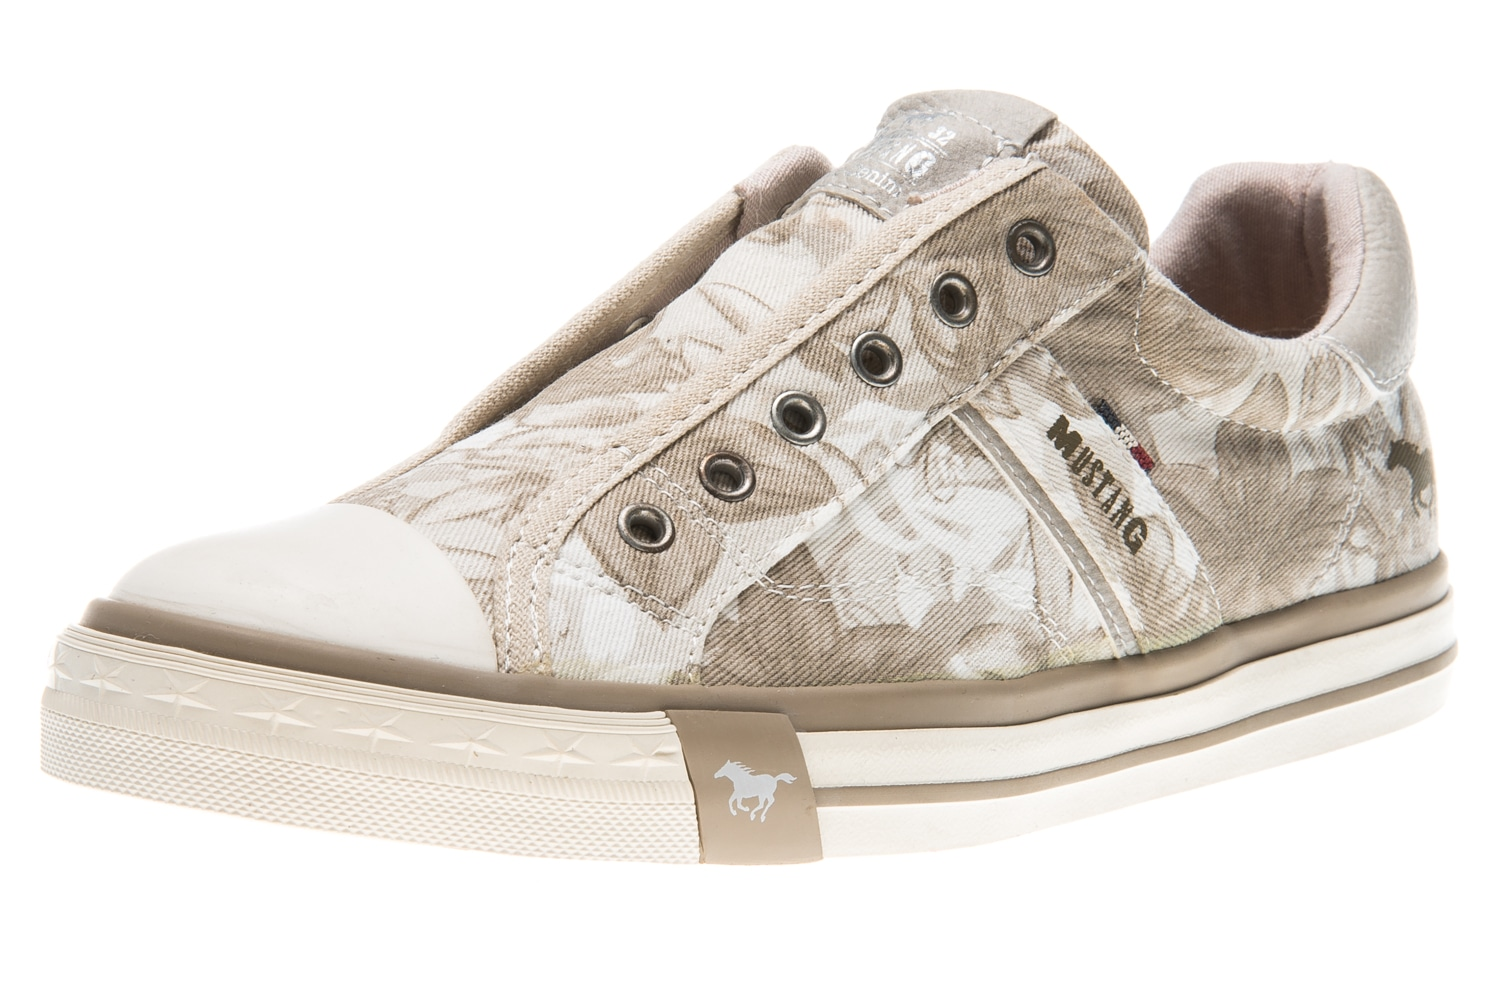 Mustang Shoes MUSTANG SHOES Sneaker, natur, beige